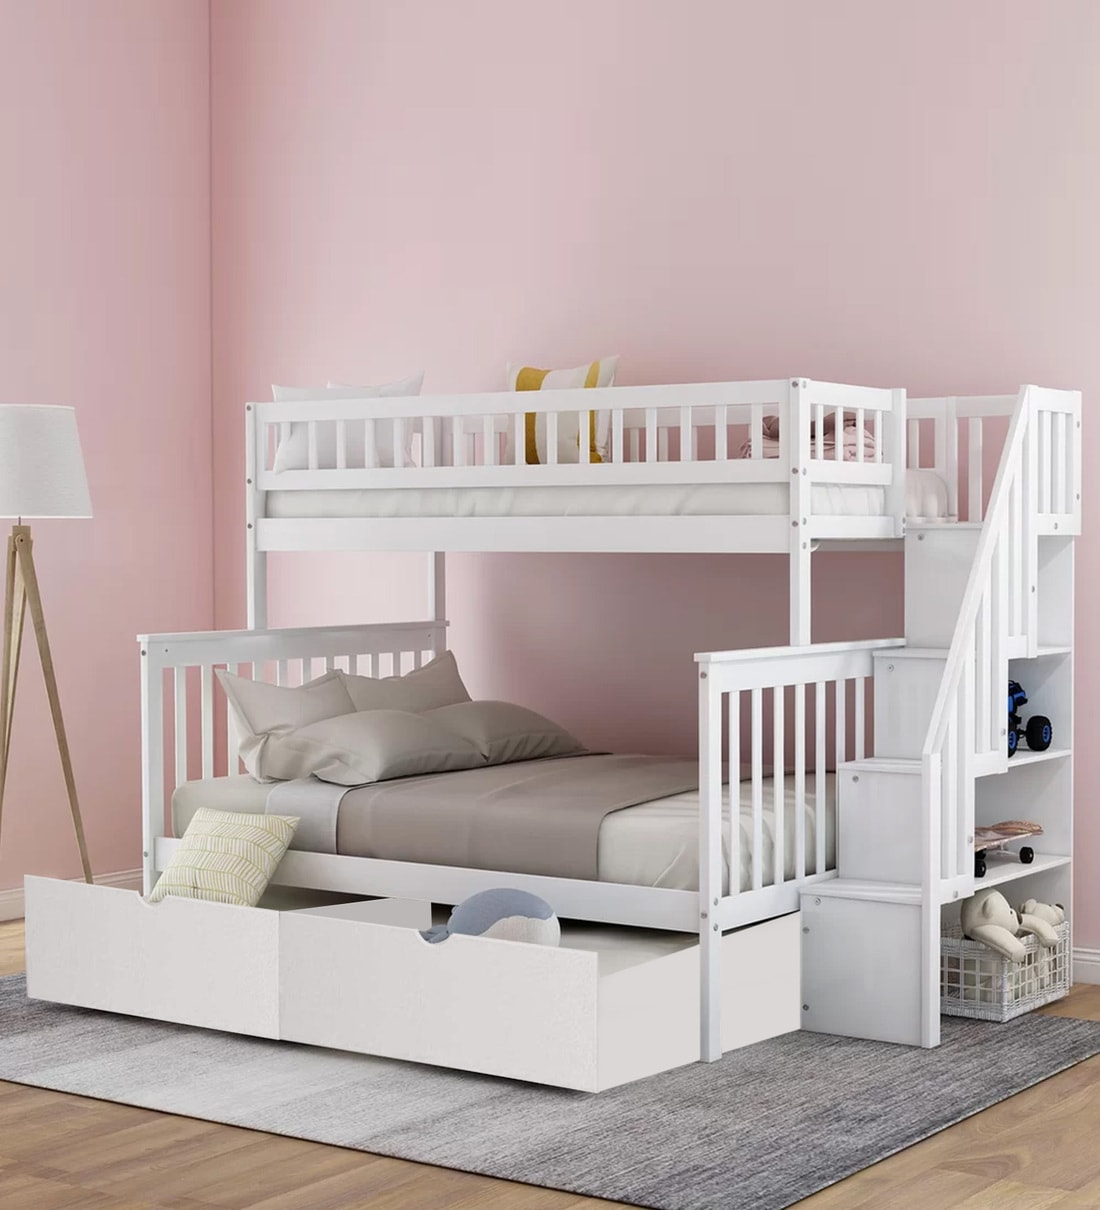 Picture of: Buy Farmhouse Pine Wood Bunk Bed With Trundle Storage In White By Casacraft Online Trundle Bunk Beds Bunk Beds Kids Furniture Pepperfry Product